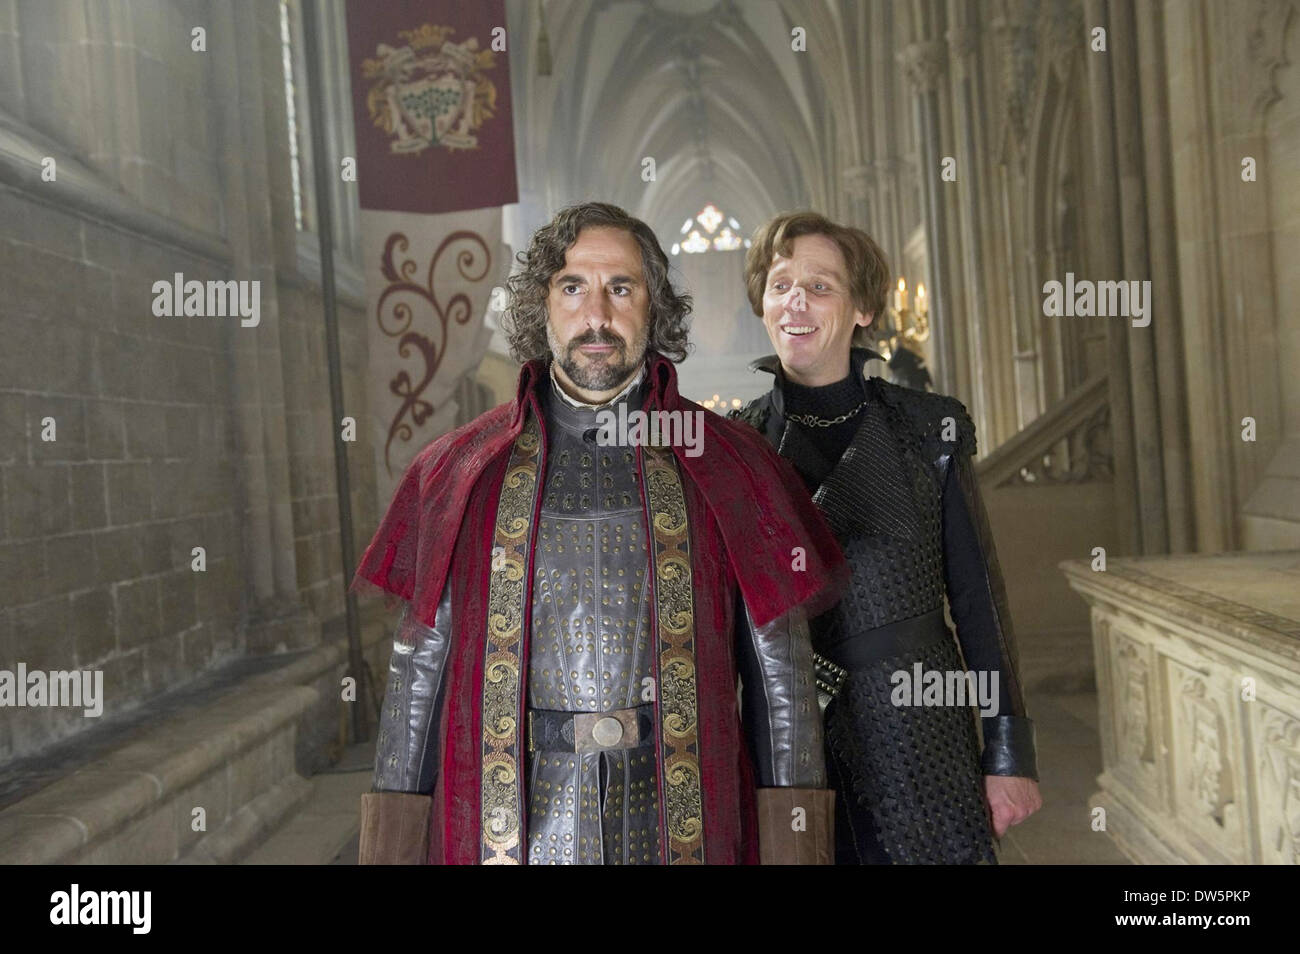 JACK THE GIANT SLAYER (2013) STANLEY TUCCI EWEN BREMNER BRYAN SINGER (DIR) MOVIESTORE COLLECTION LTD - Stock Image